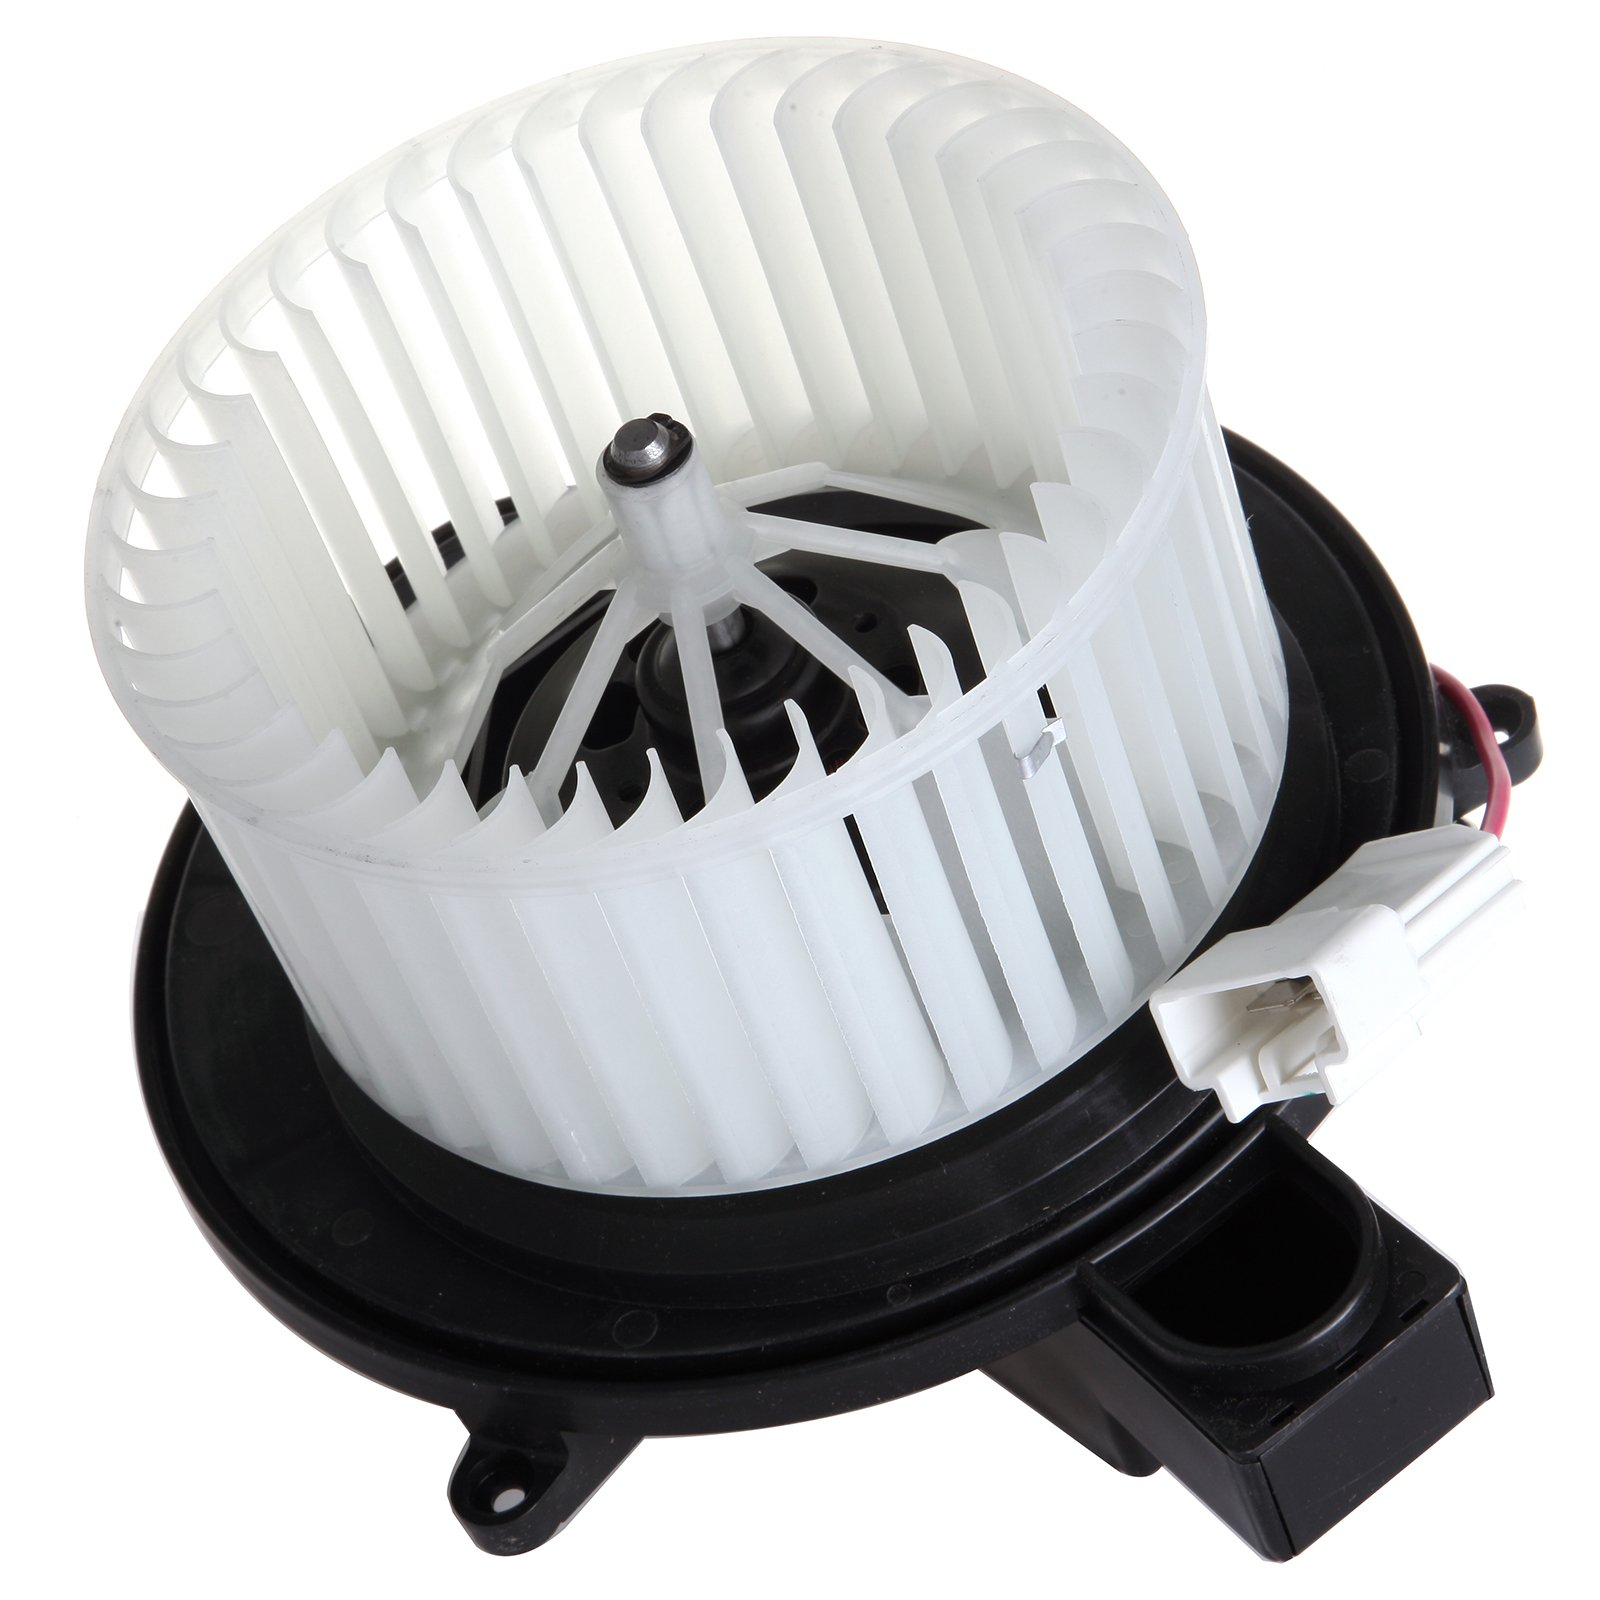 ABS plastic Heater Blower Motor SCITOO w//Fan Cage fit 2004-2008 Chrysler Pacifica 2001-2007 Chrysler Town andamp 2001-2003 Chrysler Voyager 2001-2007 Dodge Caravan 2001-2007 Dodge Grand Caravan Front